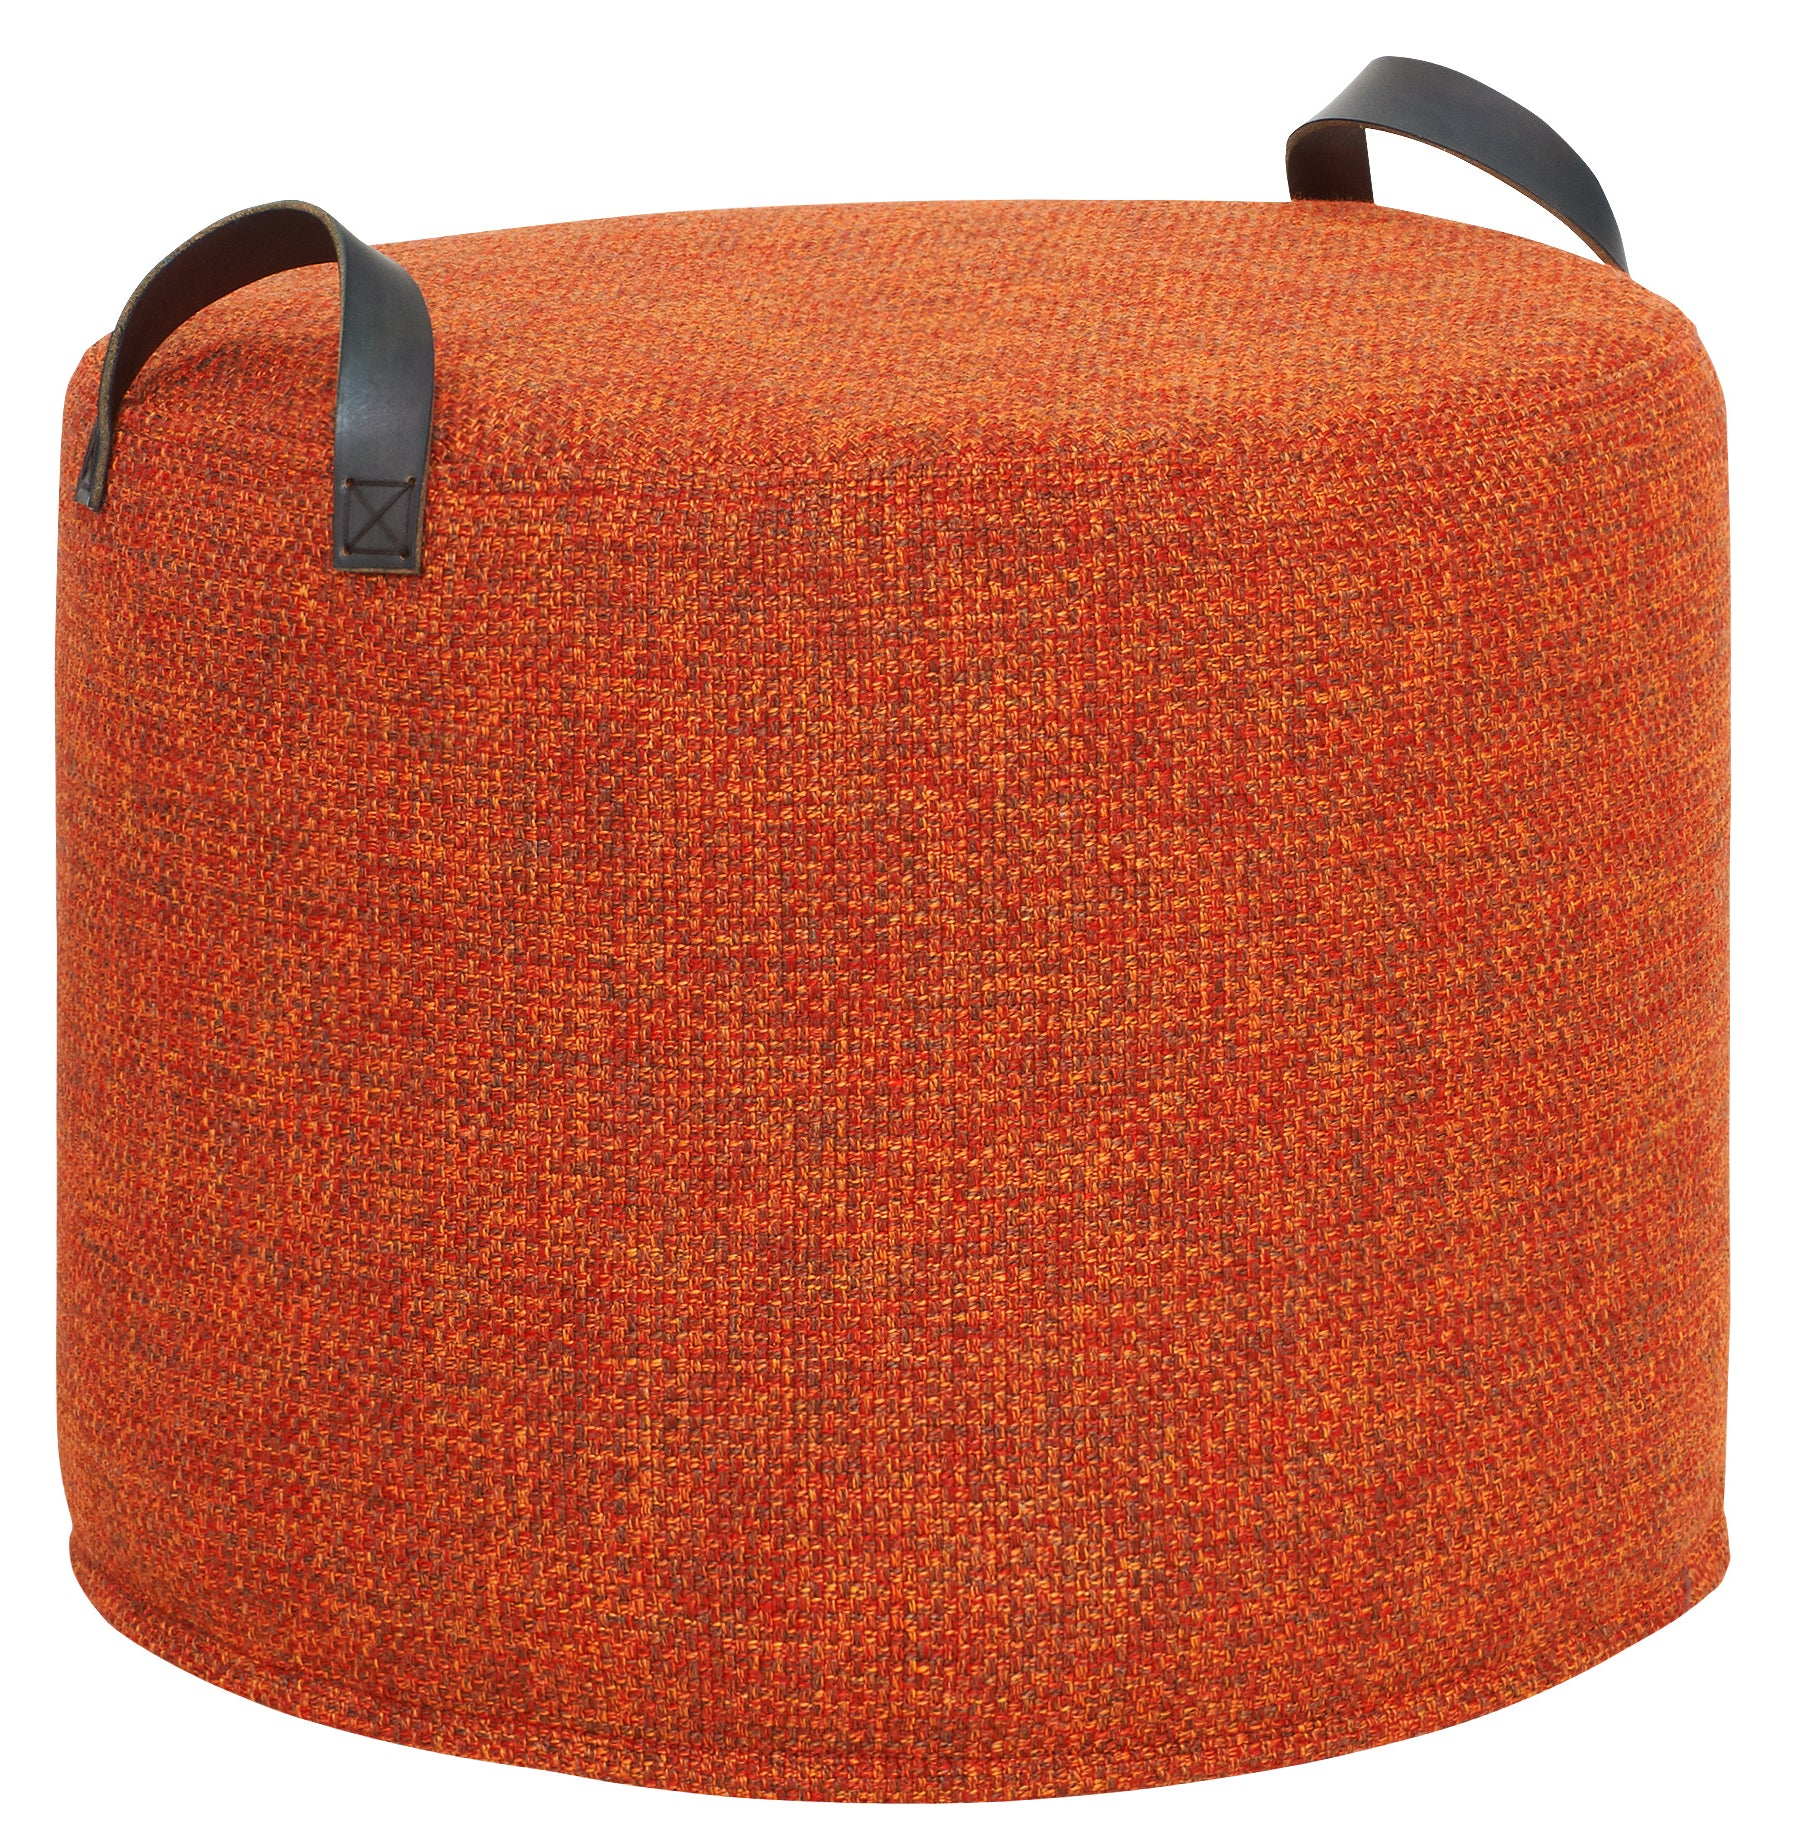 RUST TWEED Fabric Tuffet